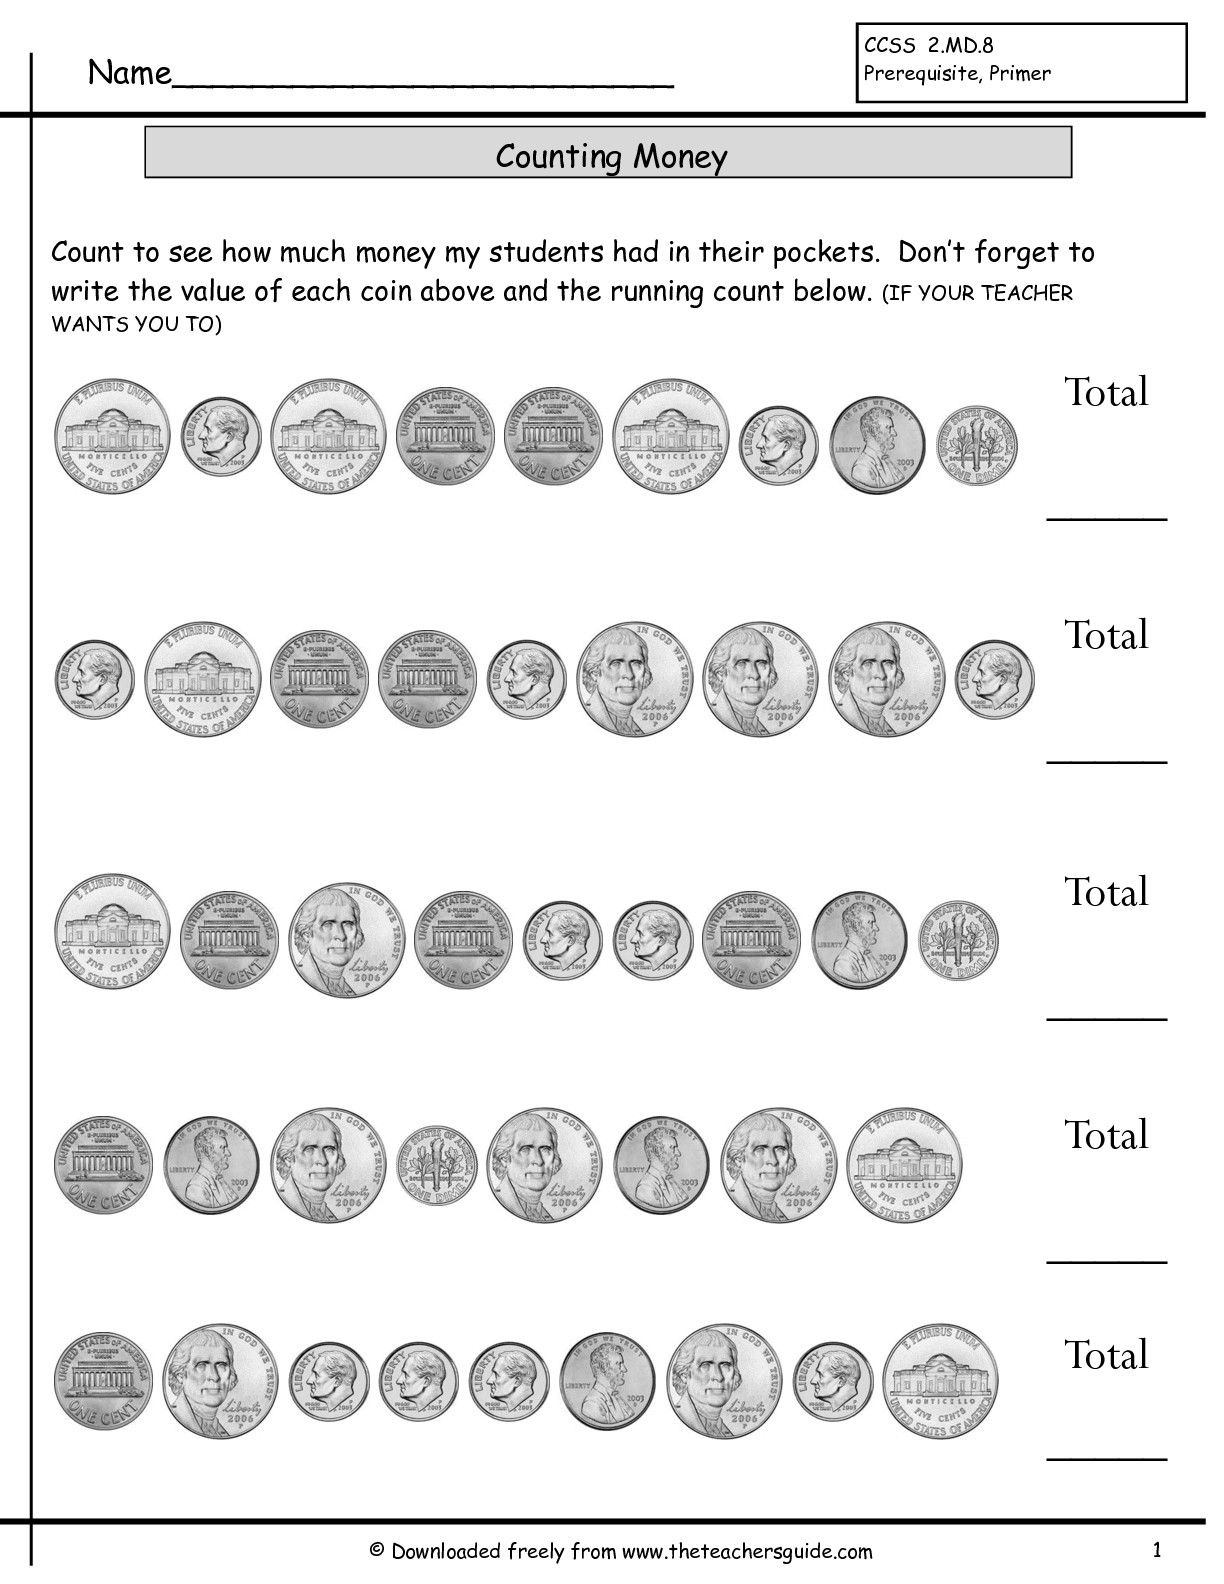 Mixed Coins Worksheet | Counting Coins Worksheets Without Quarters 2 - Free Printable Counting Money Worksheets For 2Nd Grade